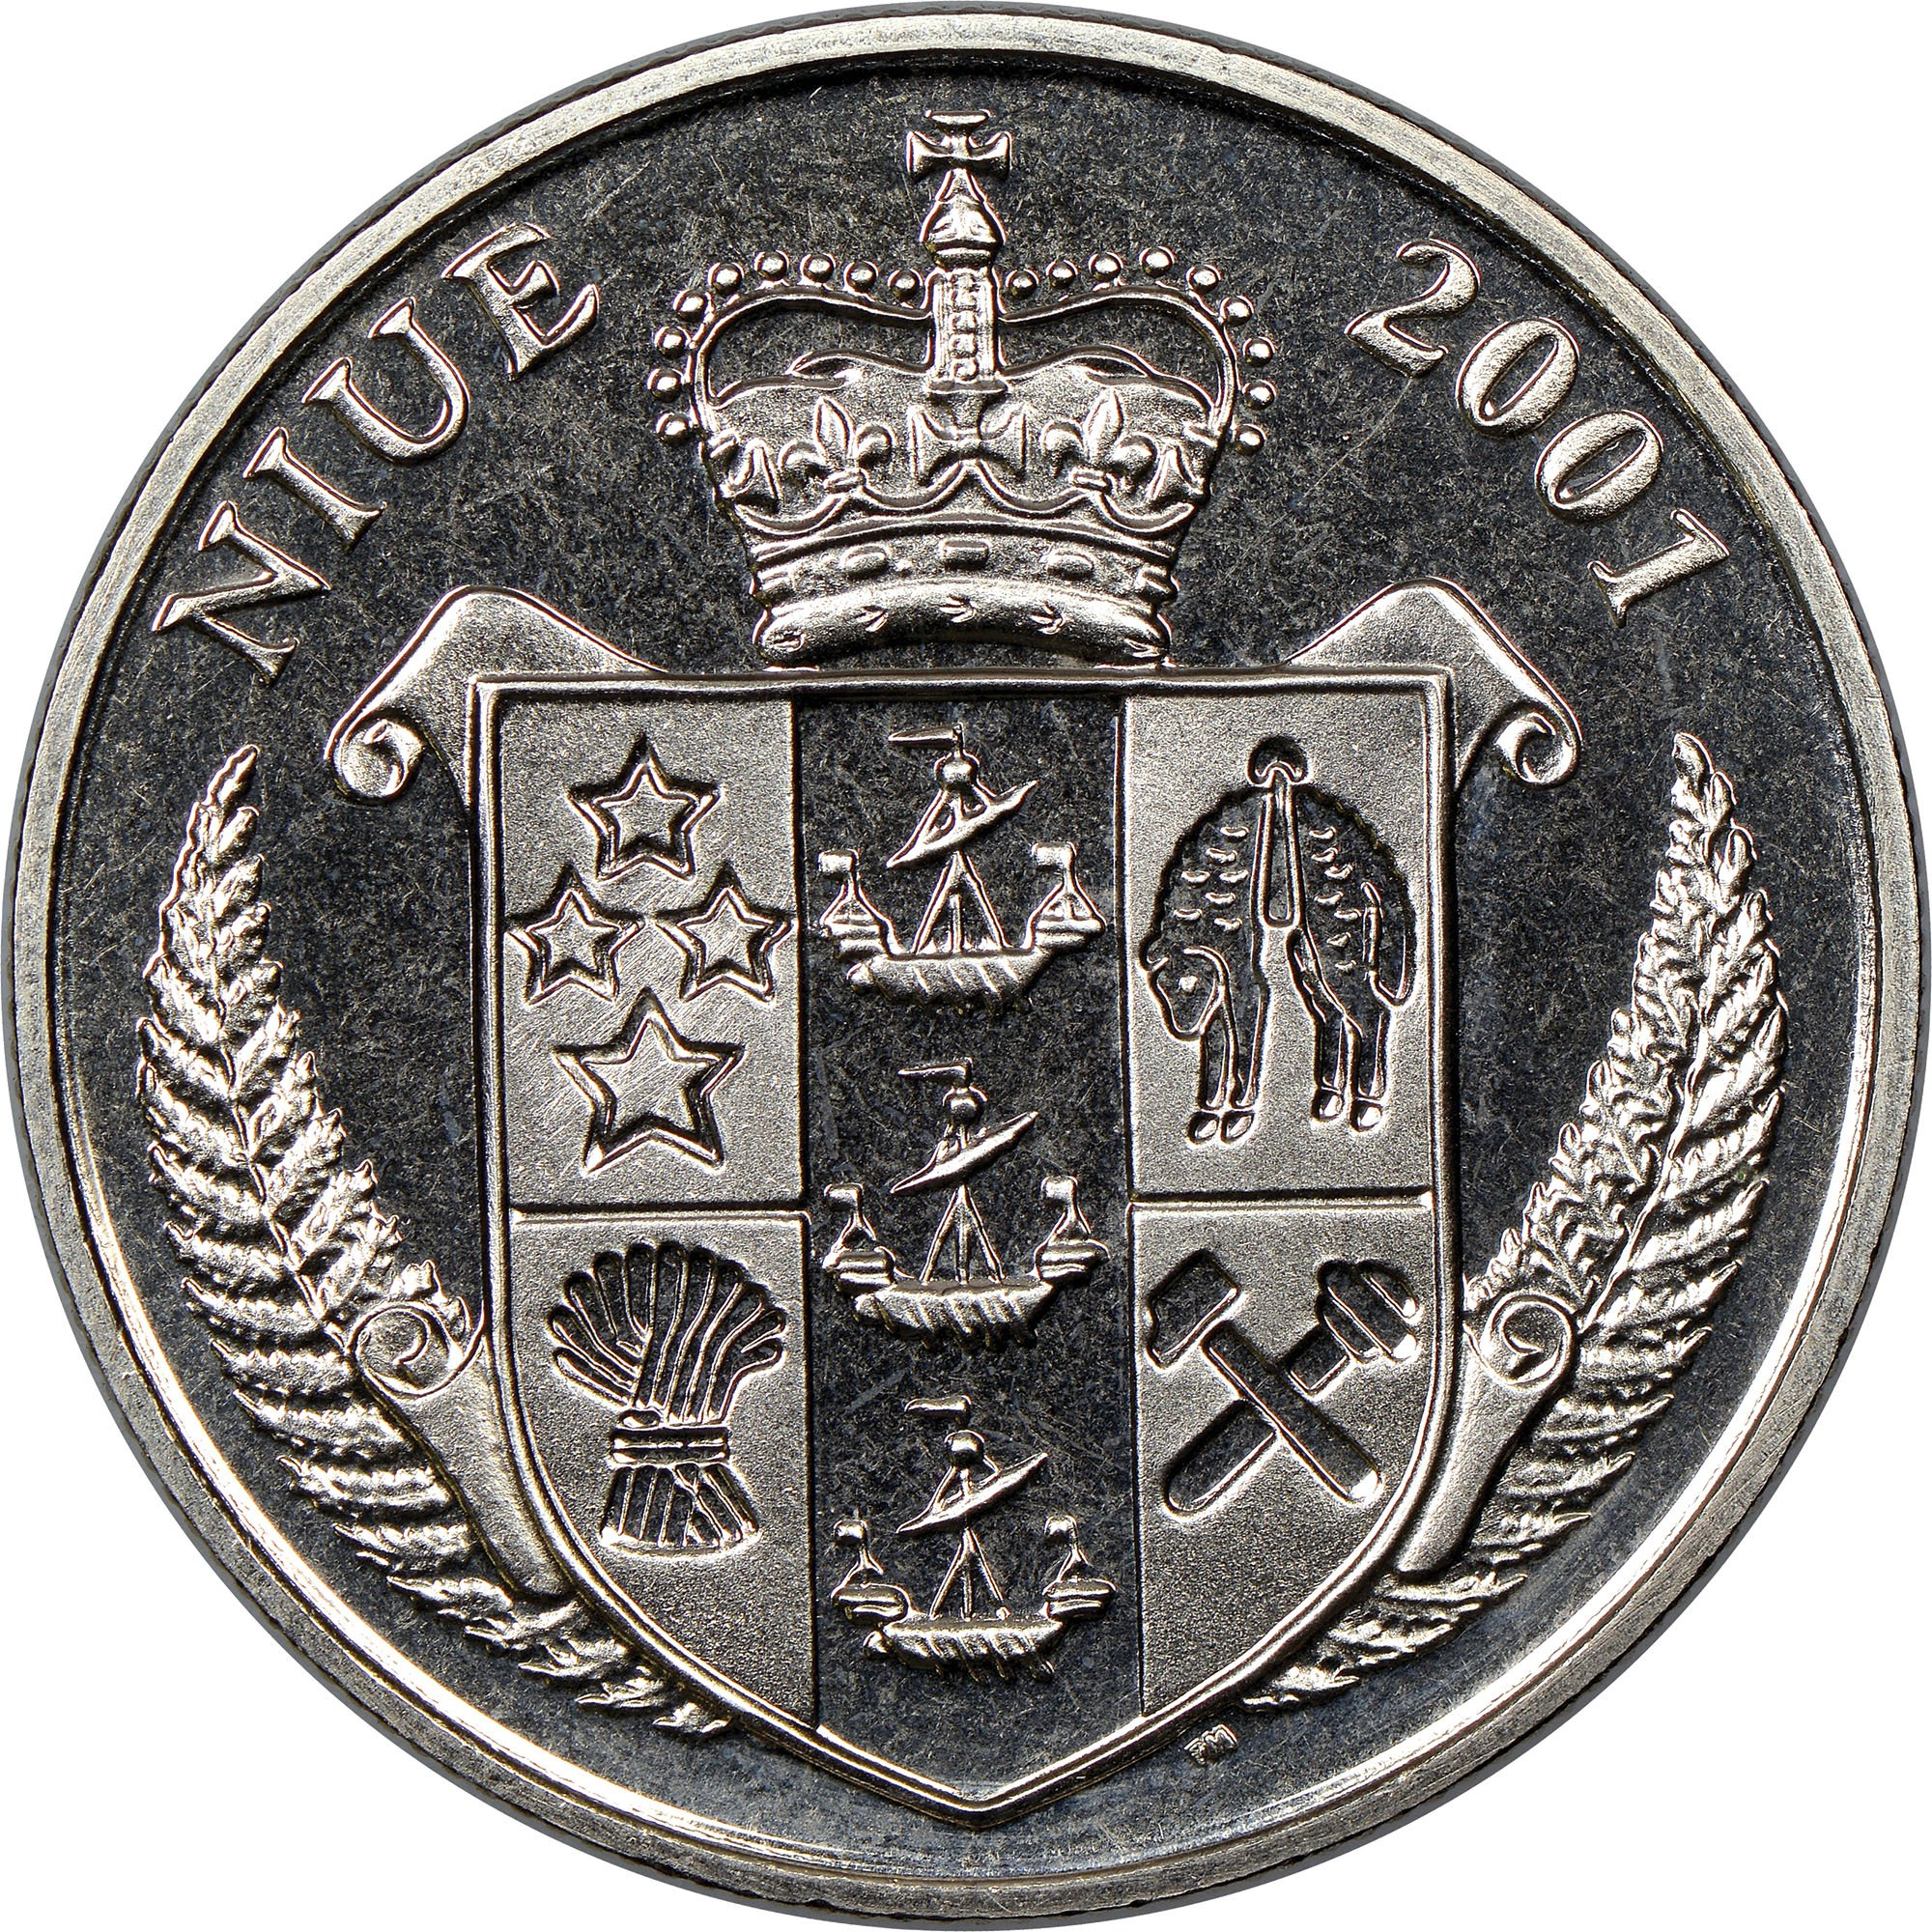 Reverse of Niue currency coin